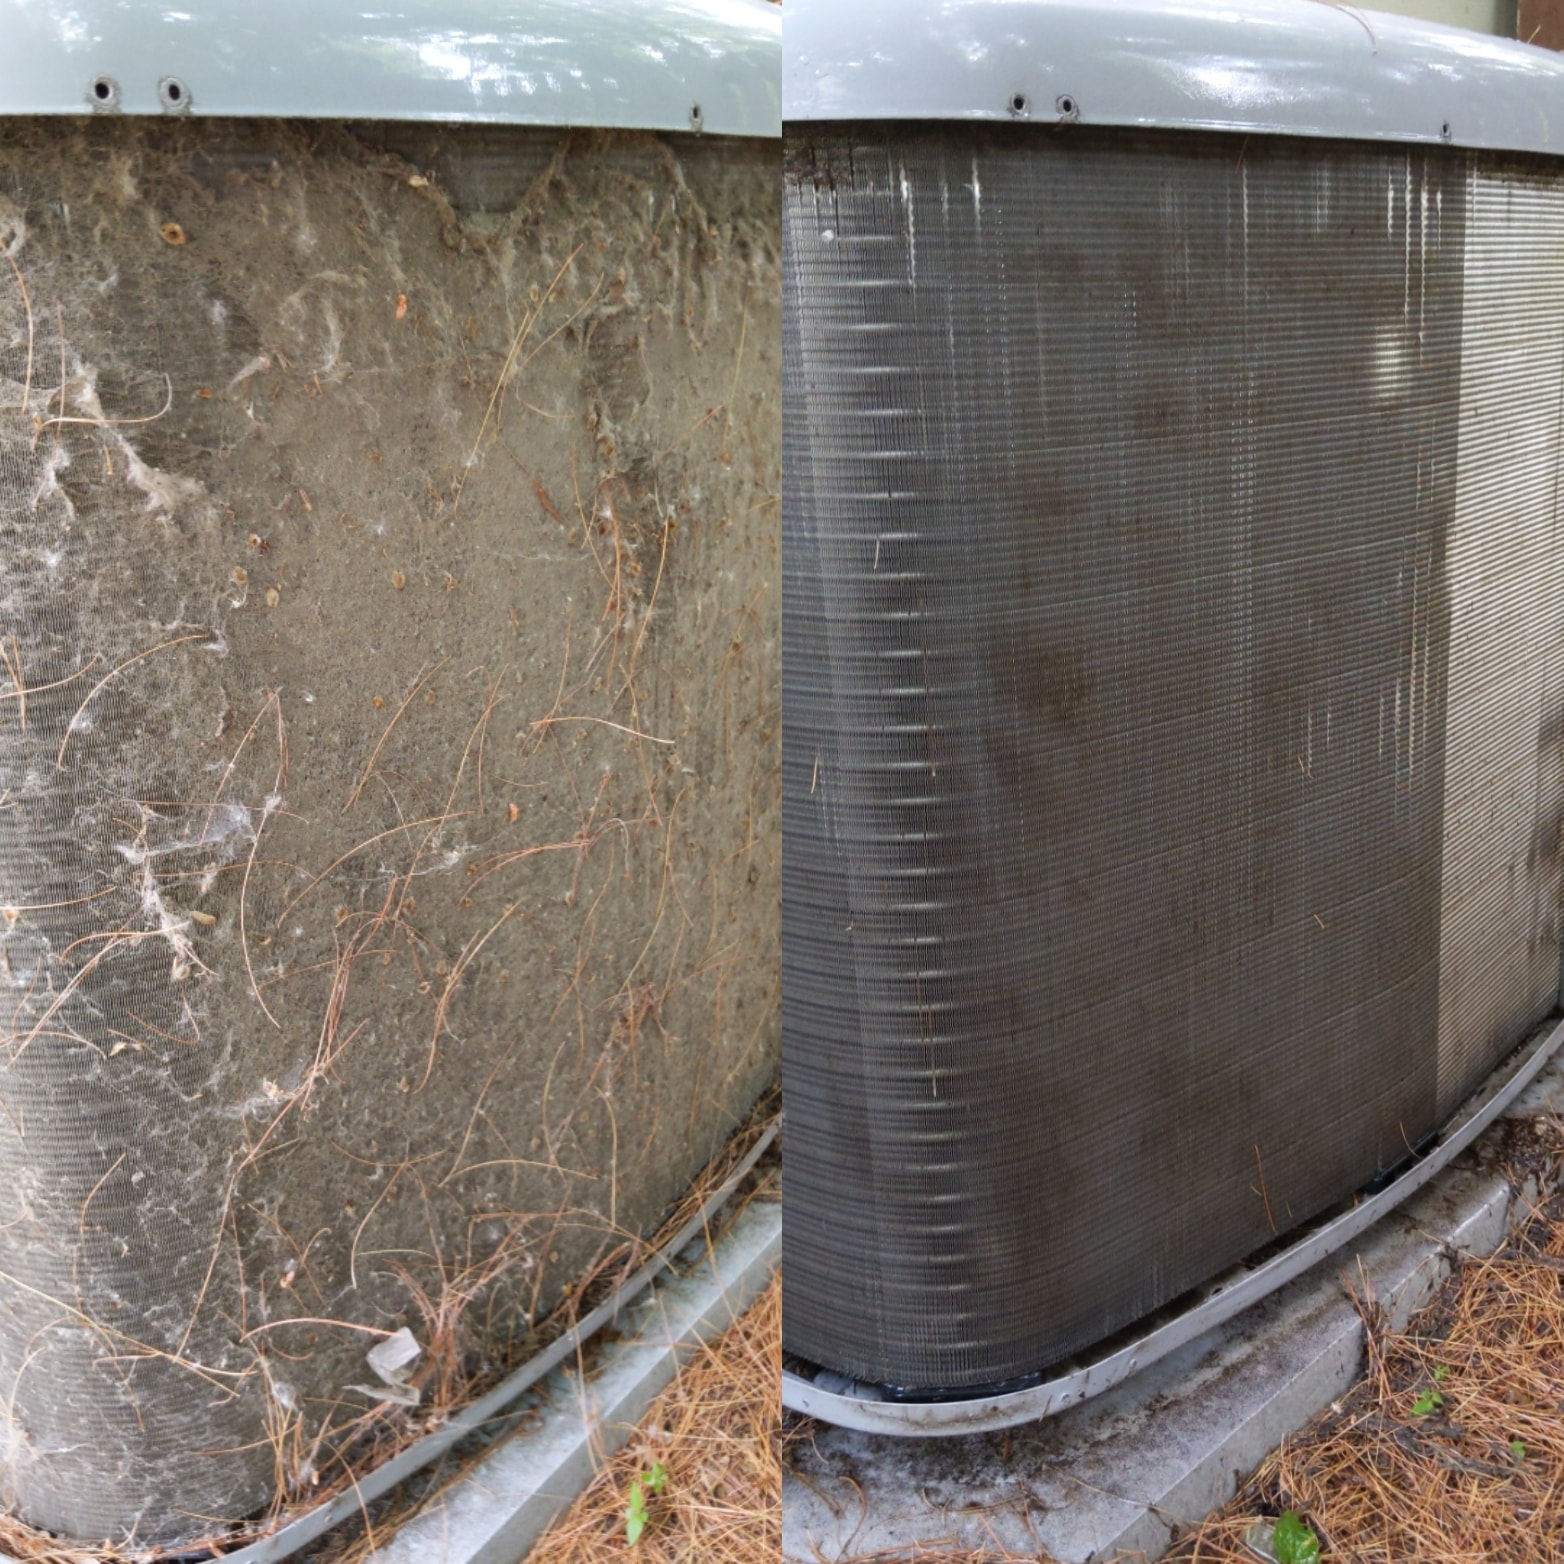 Before and after cleaning view of an AC unit